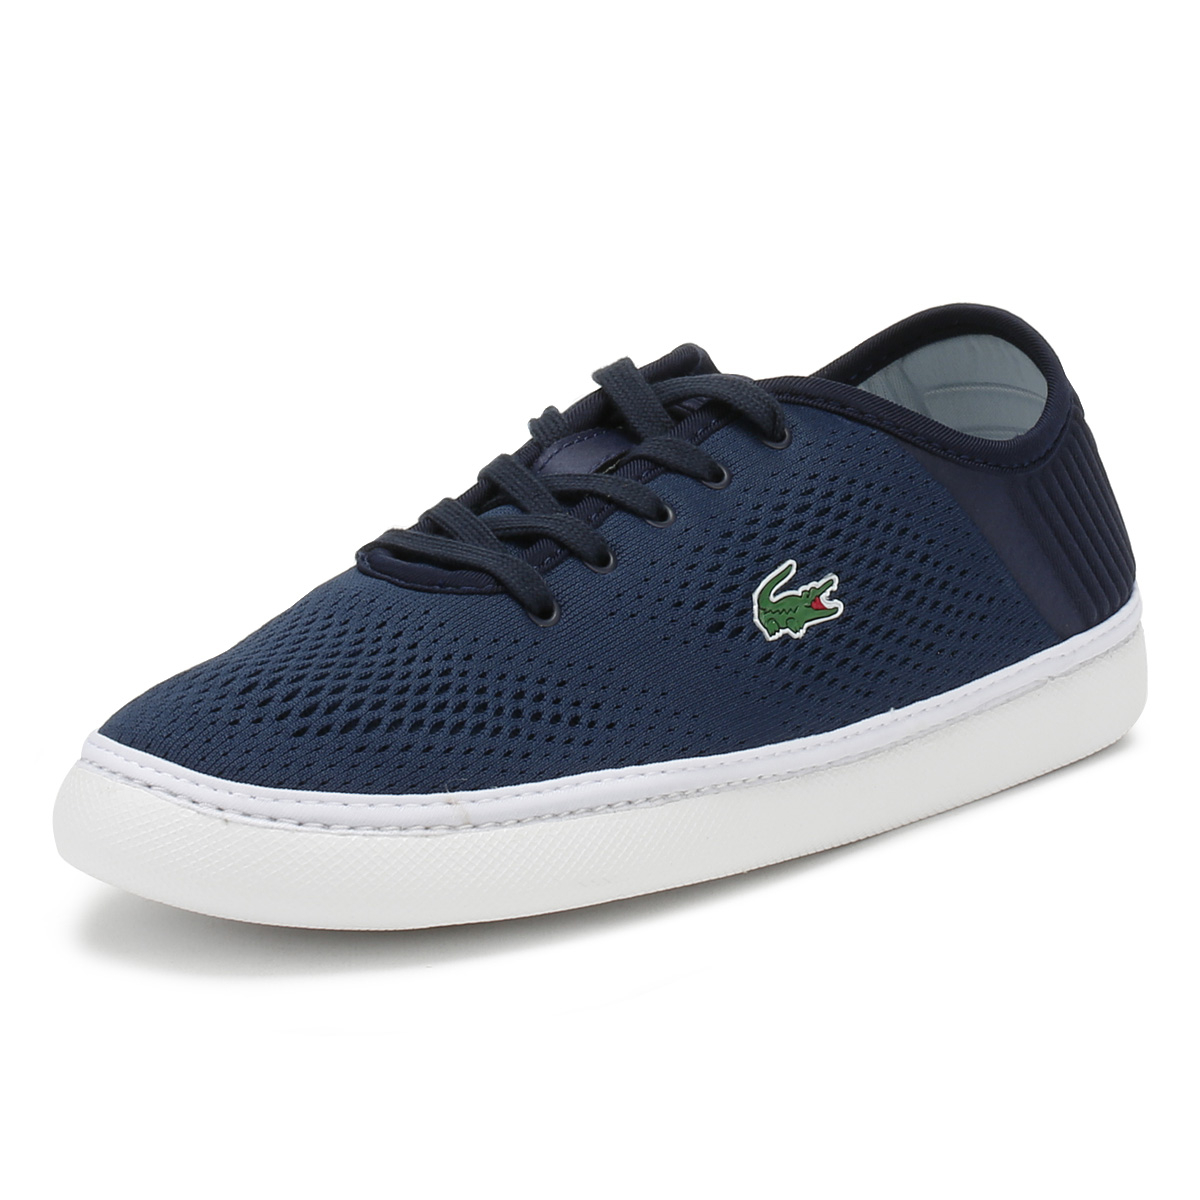 8d56fd2f2 Details about Lacoste Mens Trainers Navy   White L.YDRO Lace 118 1 Sport  Casual Lace Up Shoes